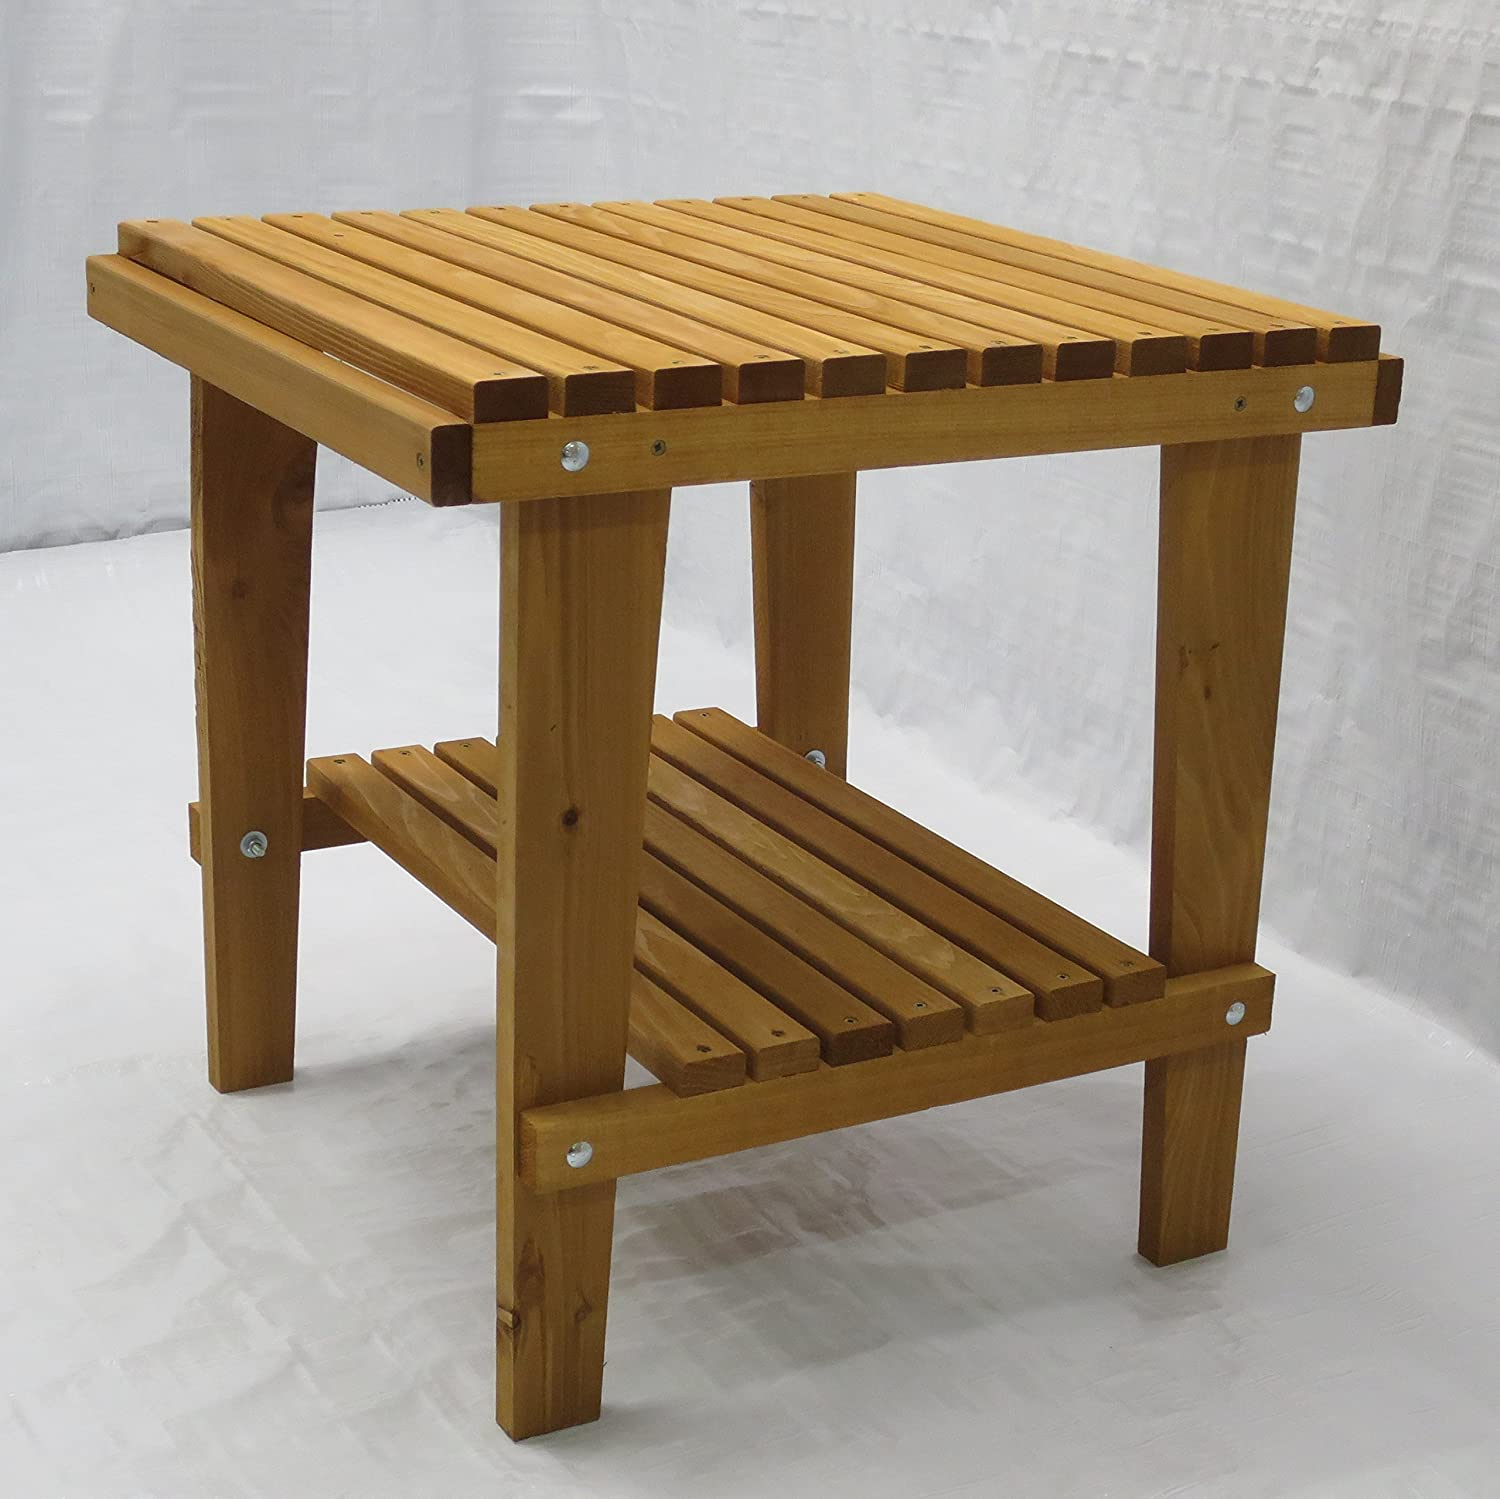 Wondrous Kilmer Creek Cedar Side Table With Shelf Stained Finish Amish Crafted Download Free Architecture Designs Scobabritishbridgeorg